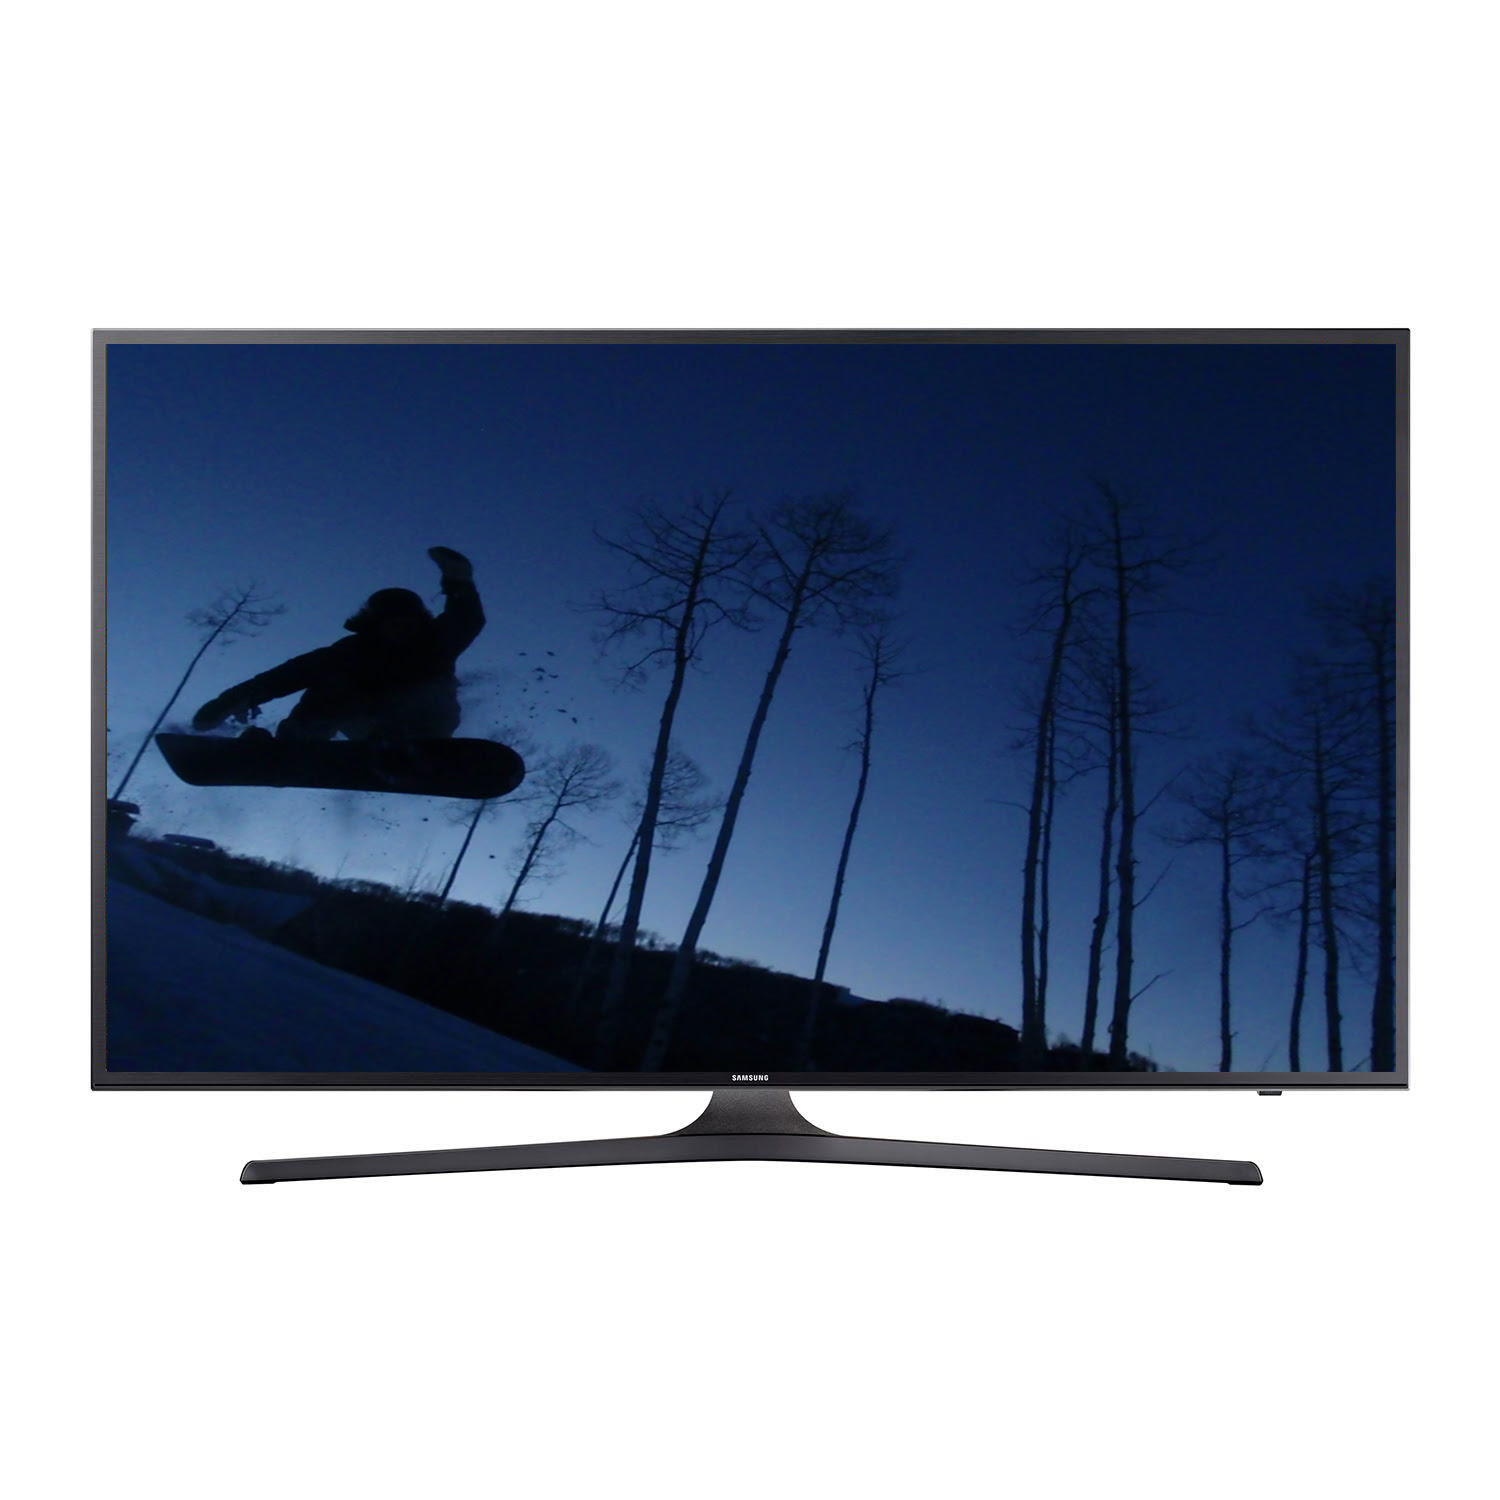 Refurbished Samsung 65. 4K Ultra Hd Smart Led Hdtv W\/ Wifi-UN65KU6300FXZA